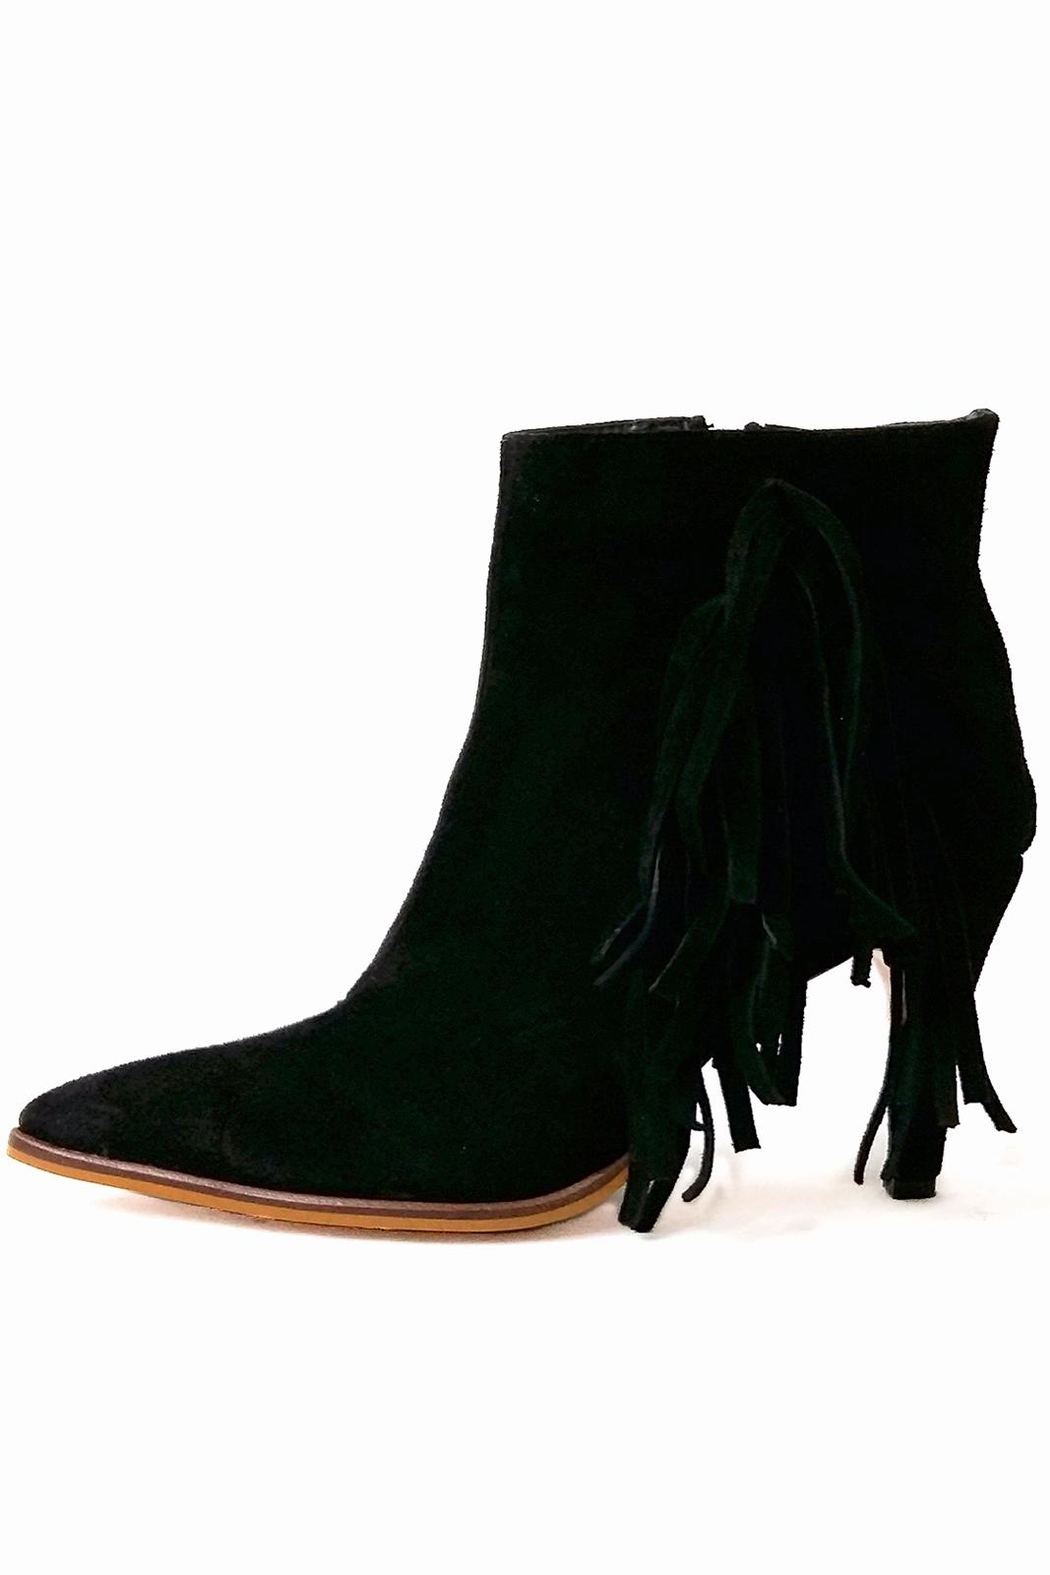 MIYE COLLAZZO Black Suede Bootie - Front Cropped Image